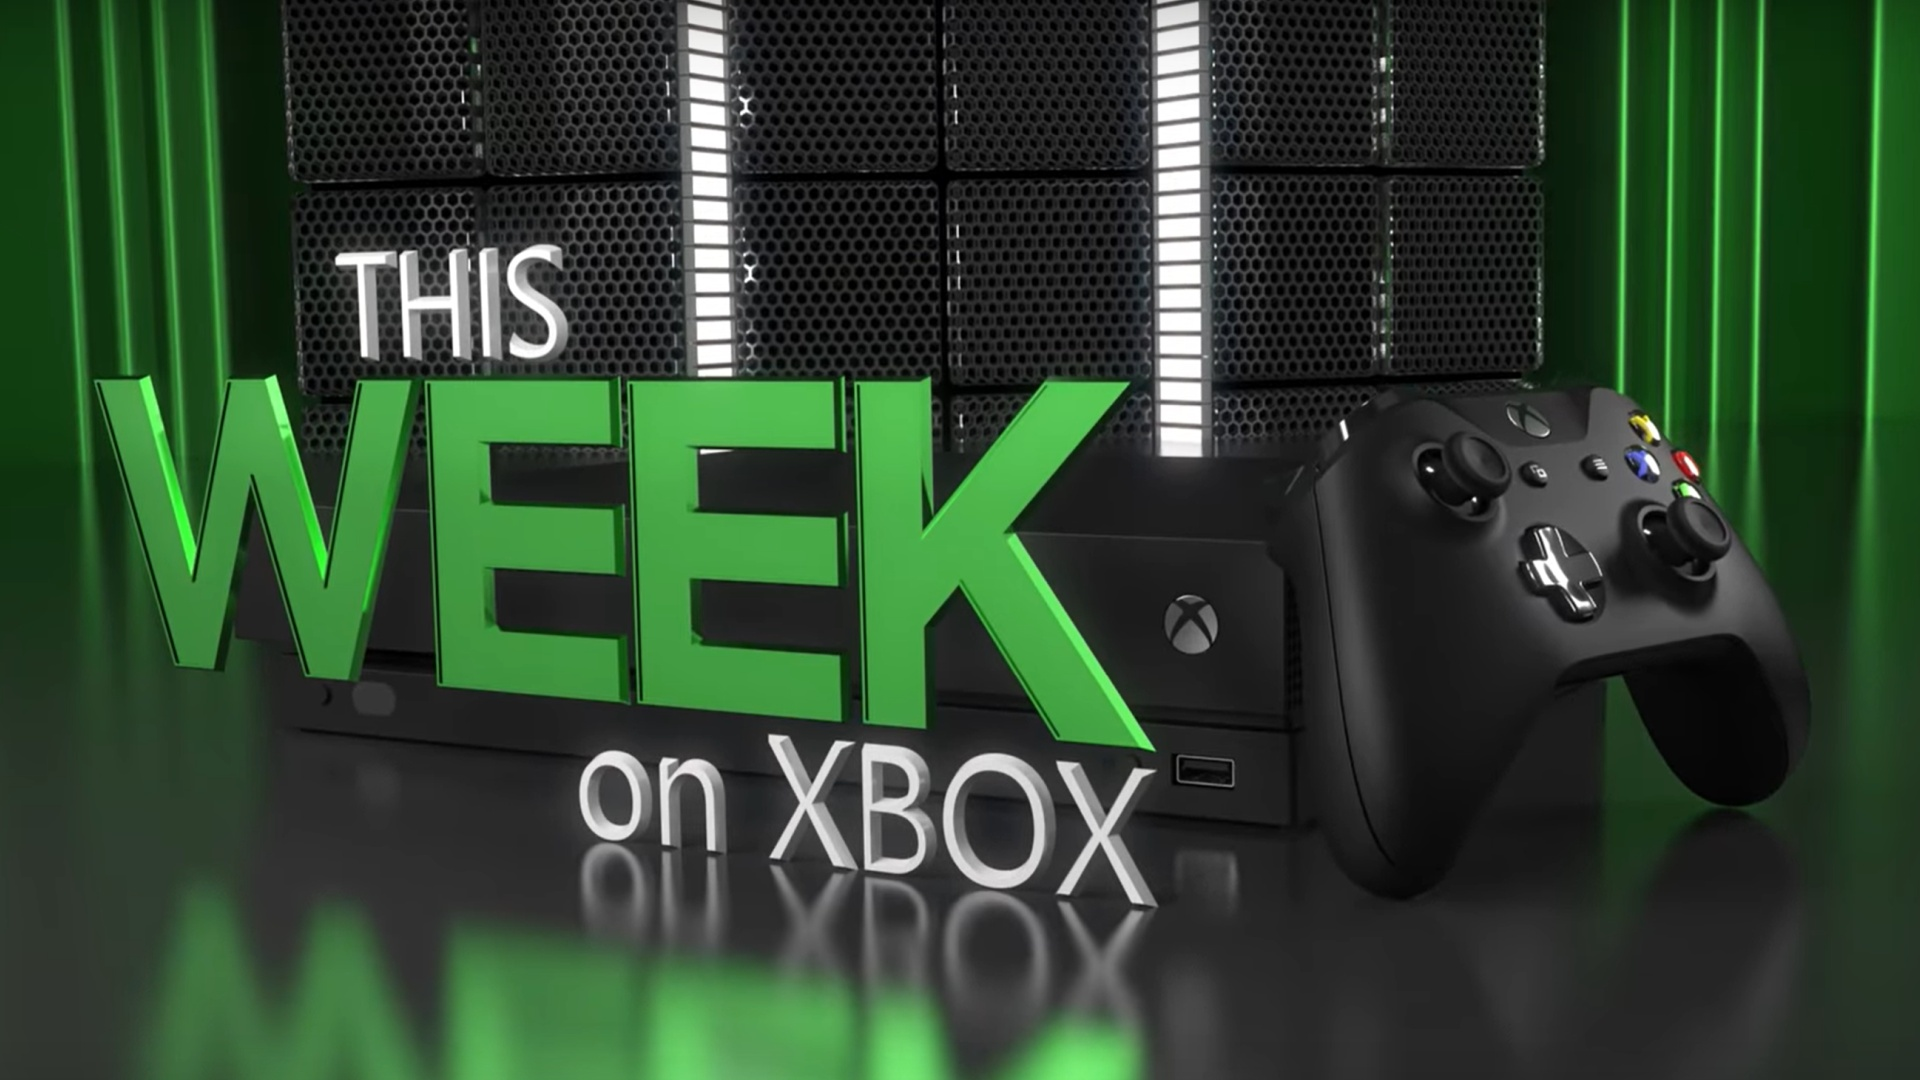 Video For This Week on Xbox: April 10, 2020